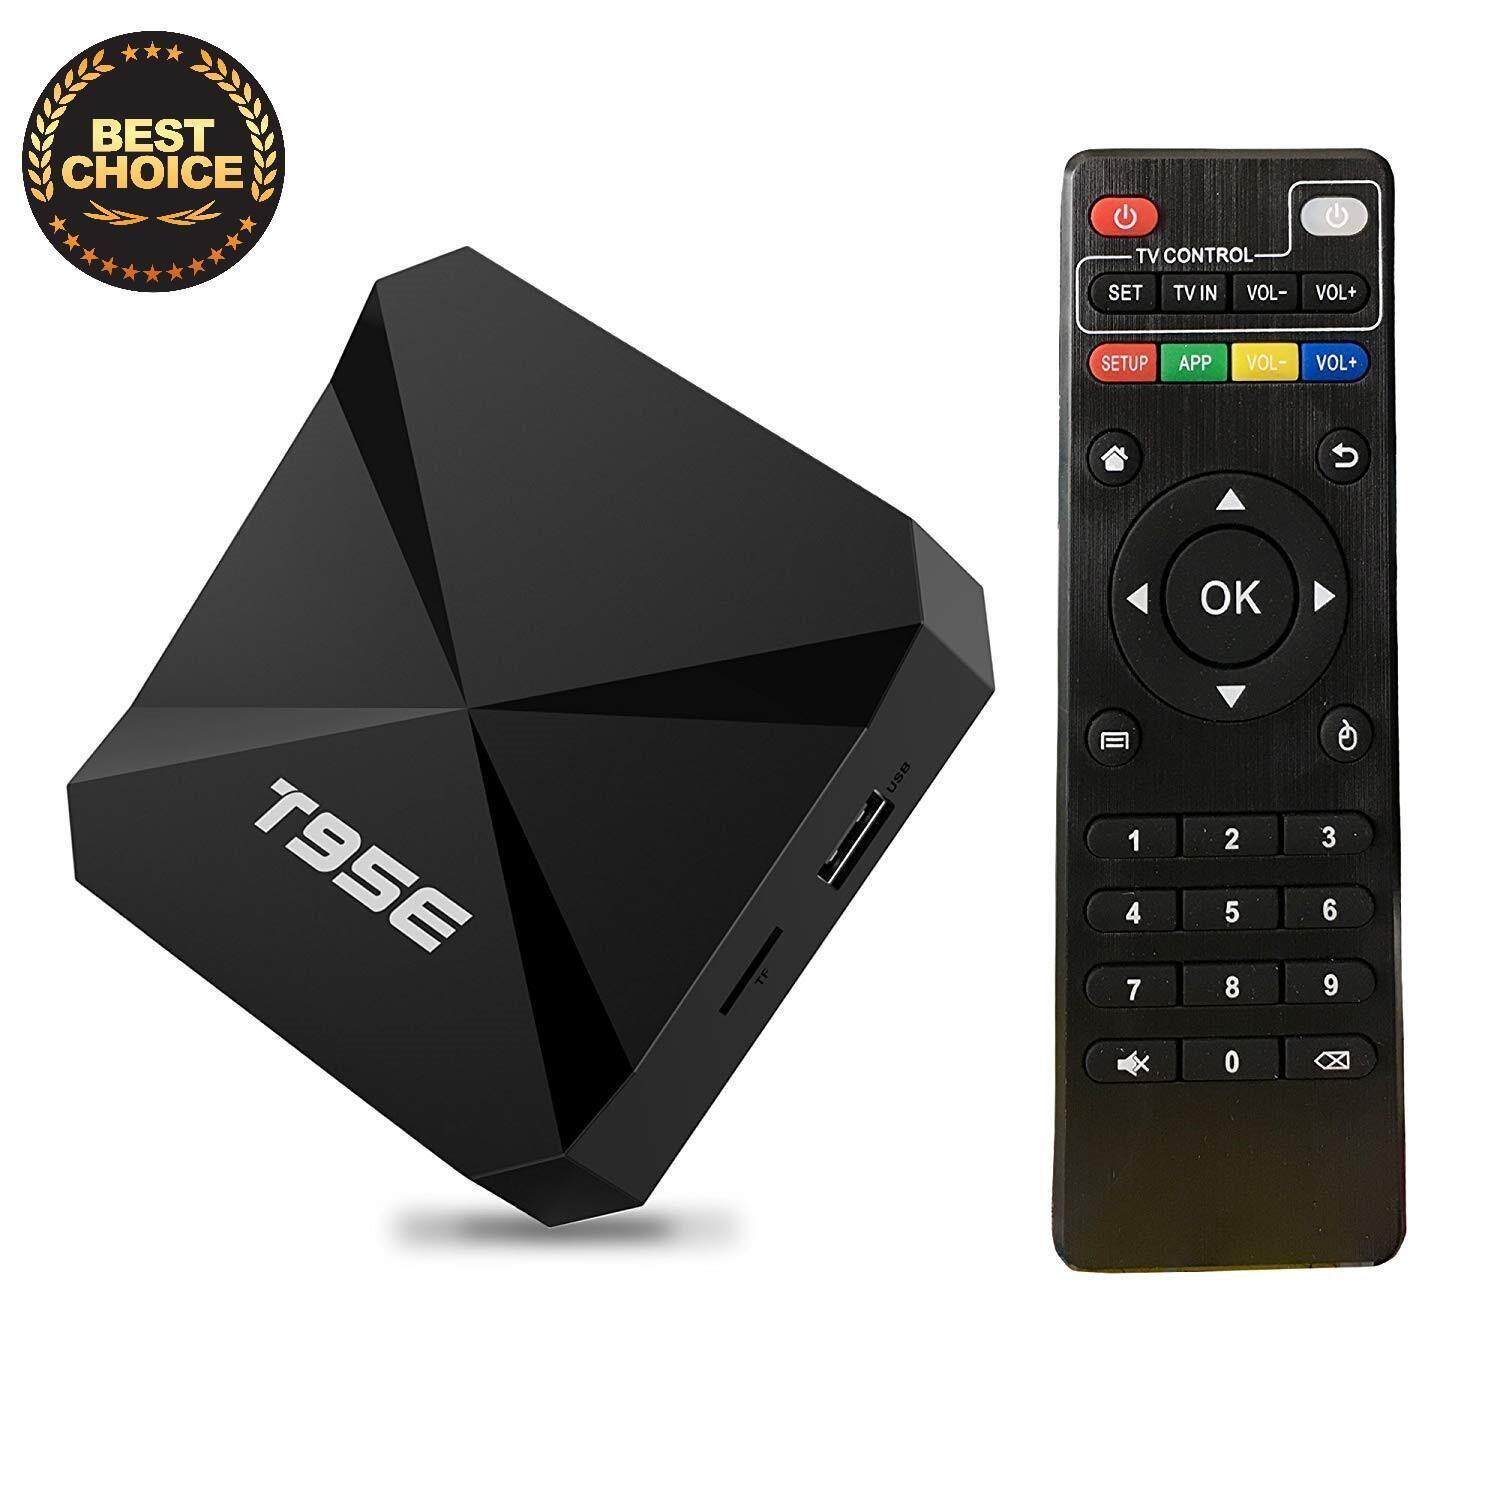 สอนใช้งาน  สกลนคร T95E 4K Media Player TV Box with Remote Control  Android 5.1  RK3229 Quad Core 2.0GHz  RAM: 1GB  ROM: 8GB  Support WiFi  3D  KD Playe